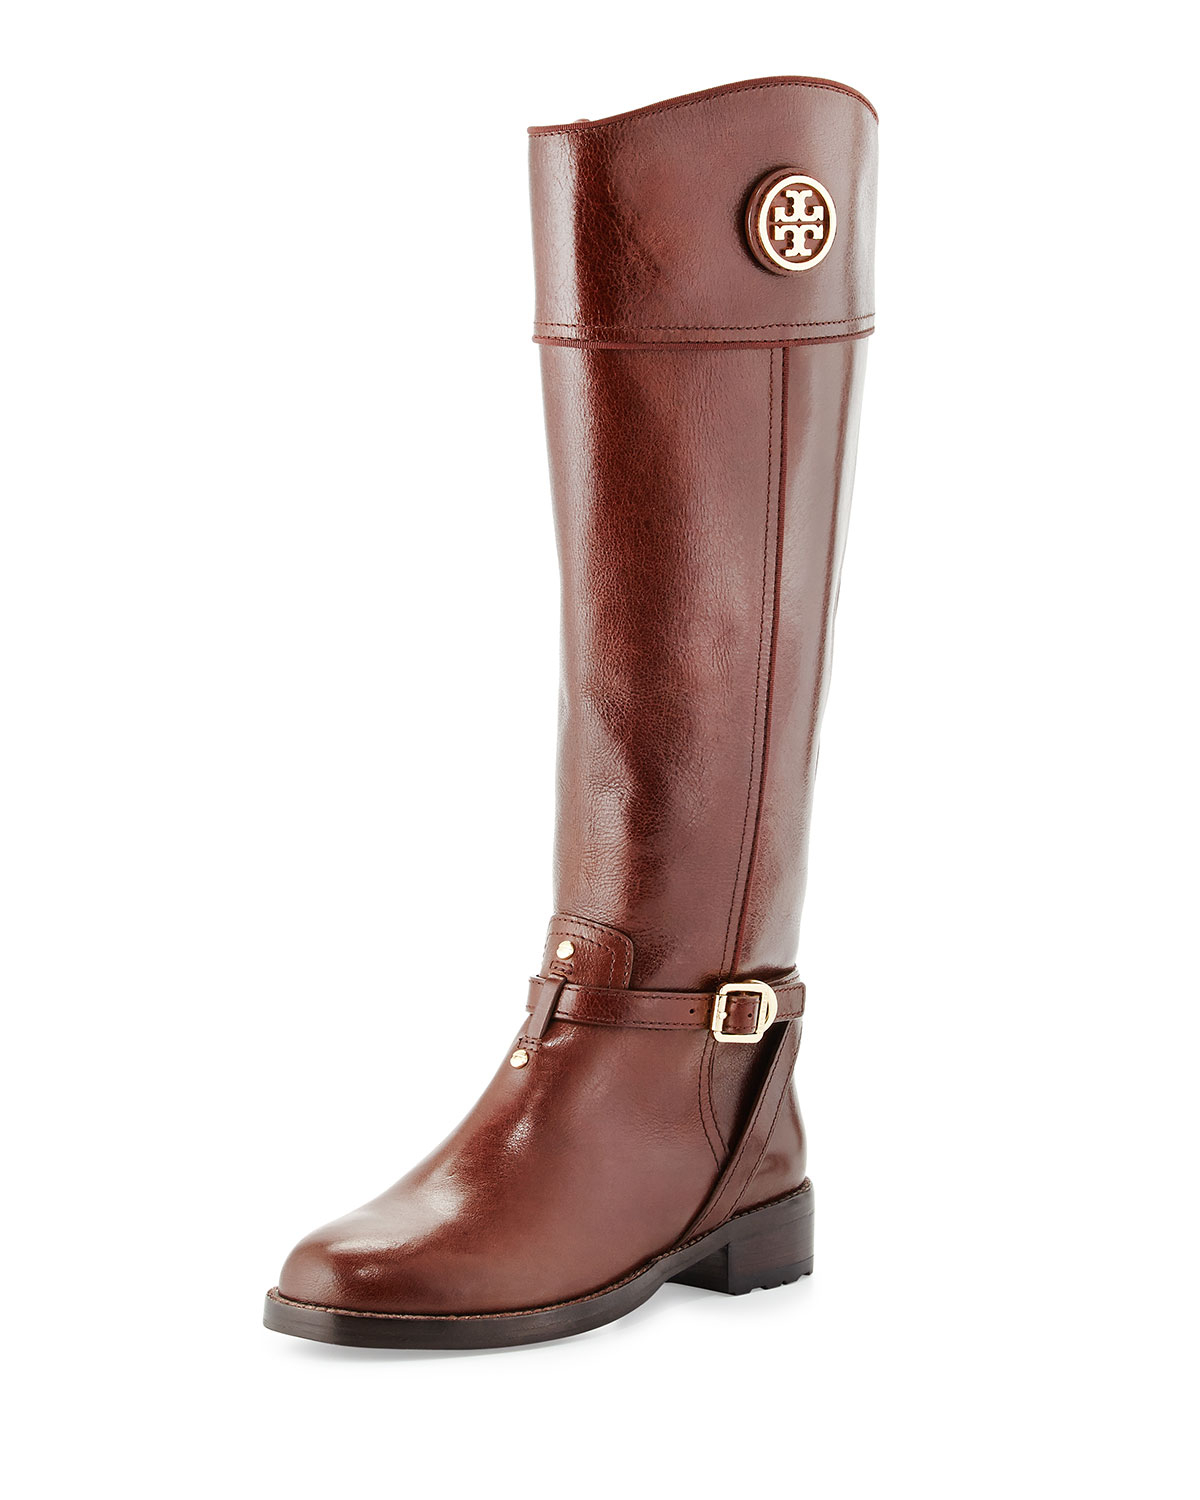 Free shipping BOTH ways on Boots, Riding Boots, from our vast selection of styles. Fast delivery, and 24/7/ real-person service with a smile. Click or call